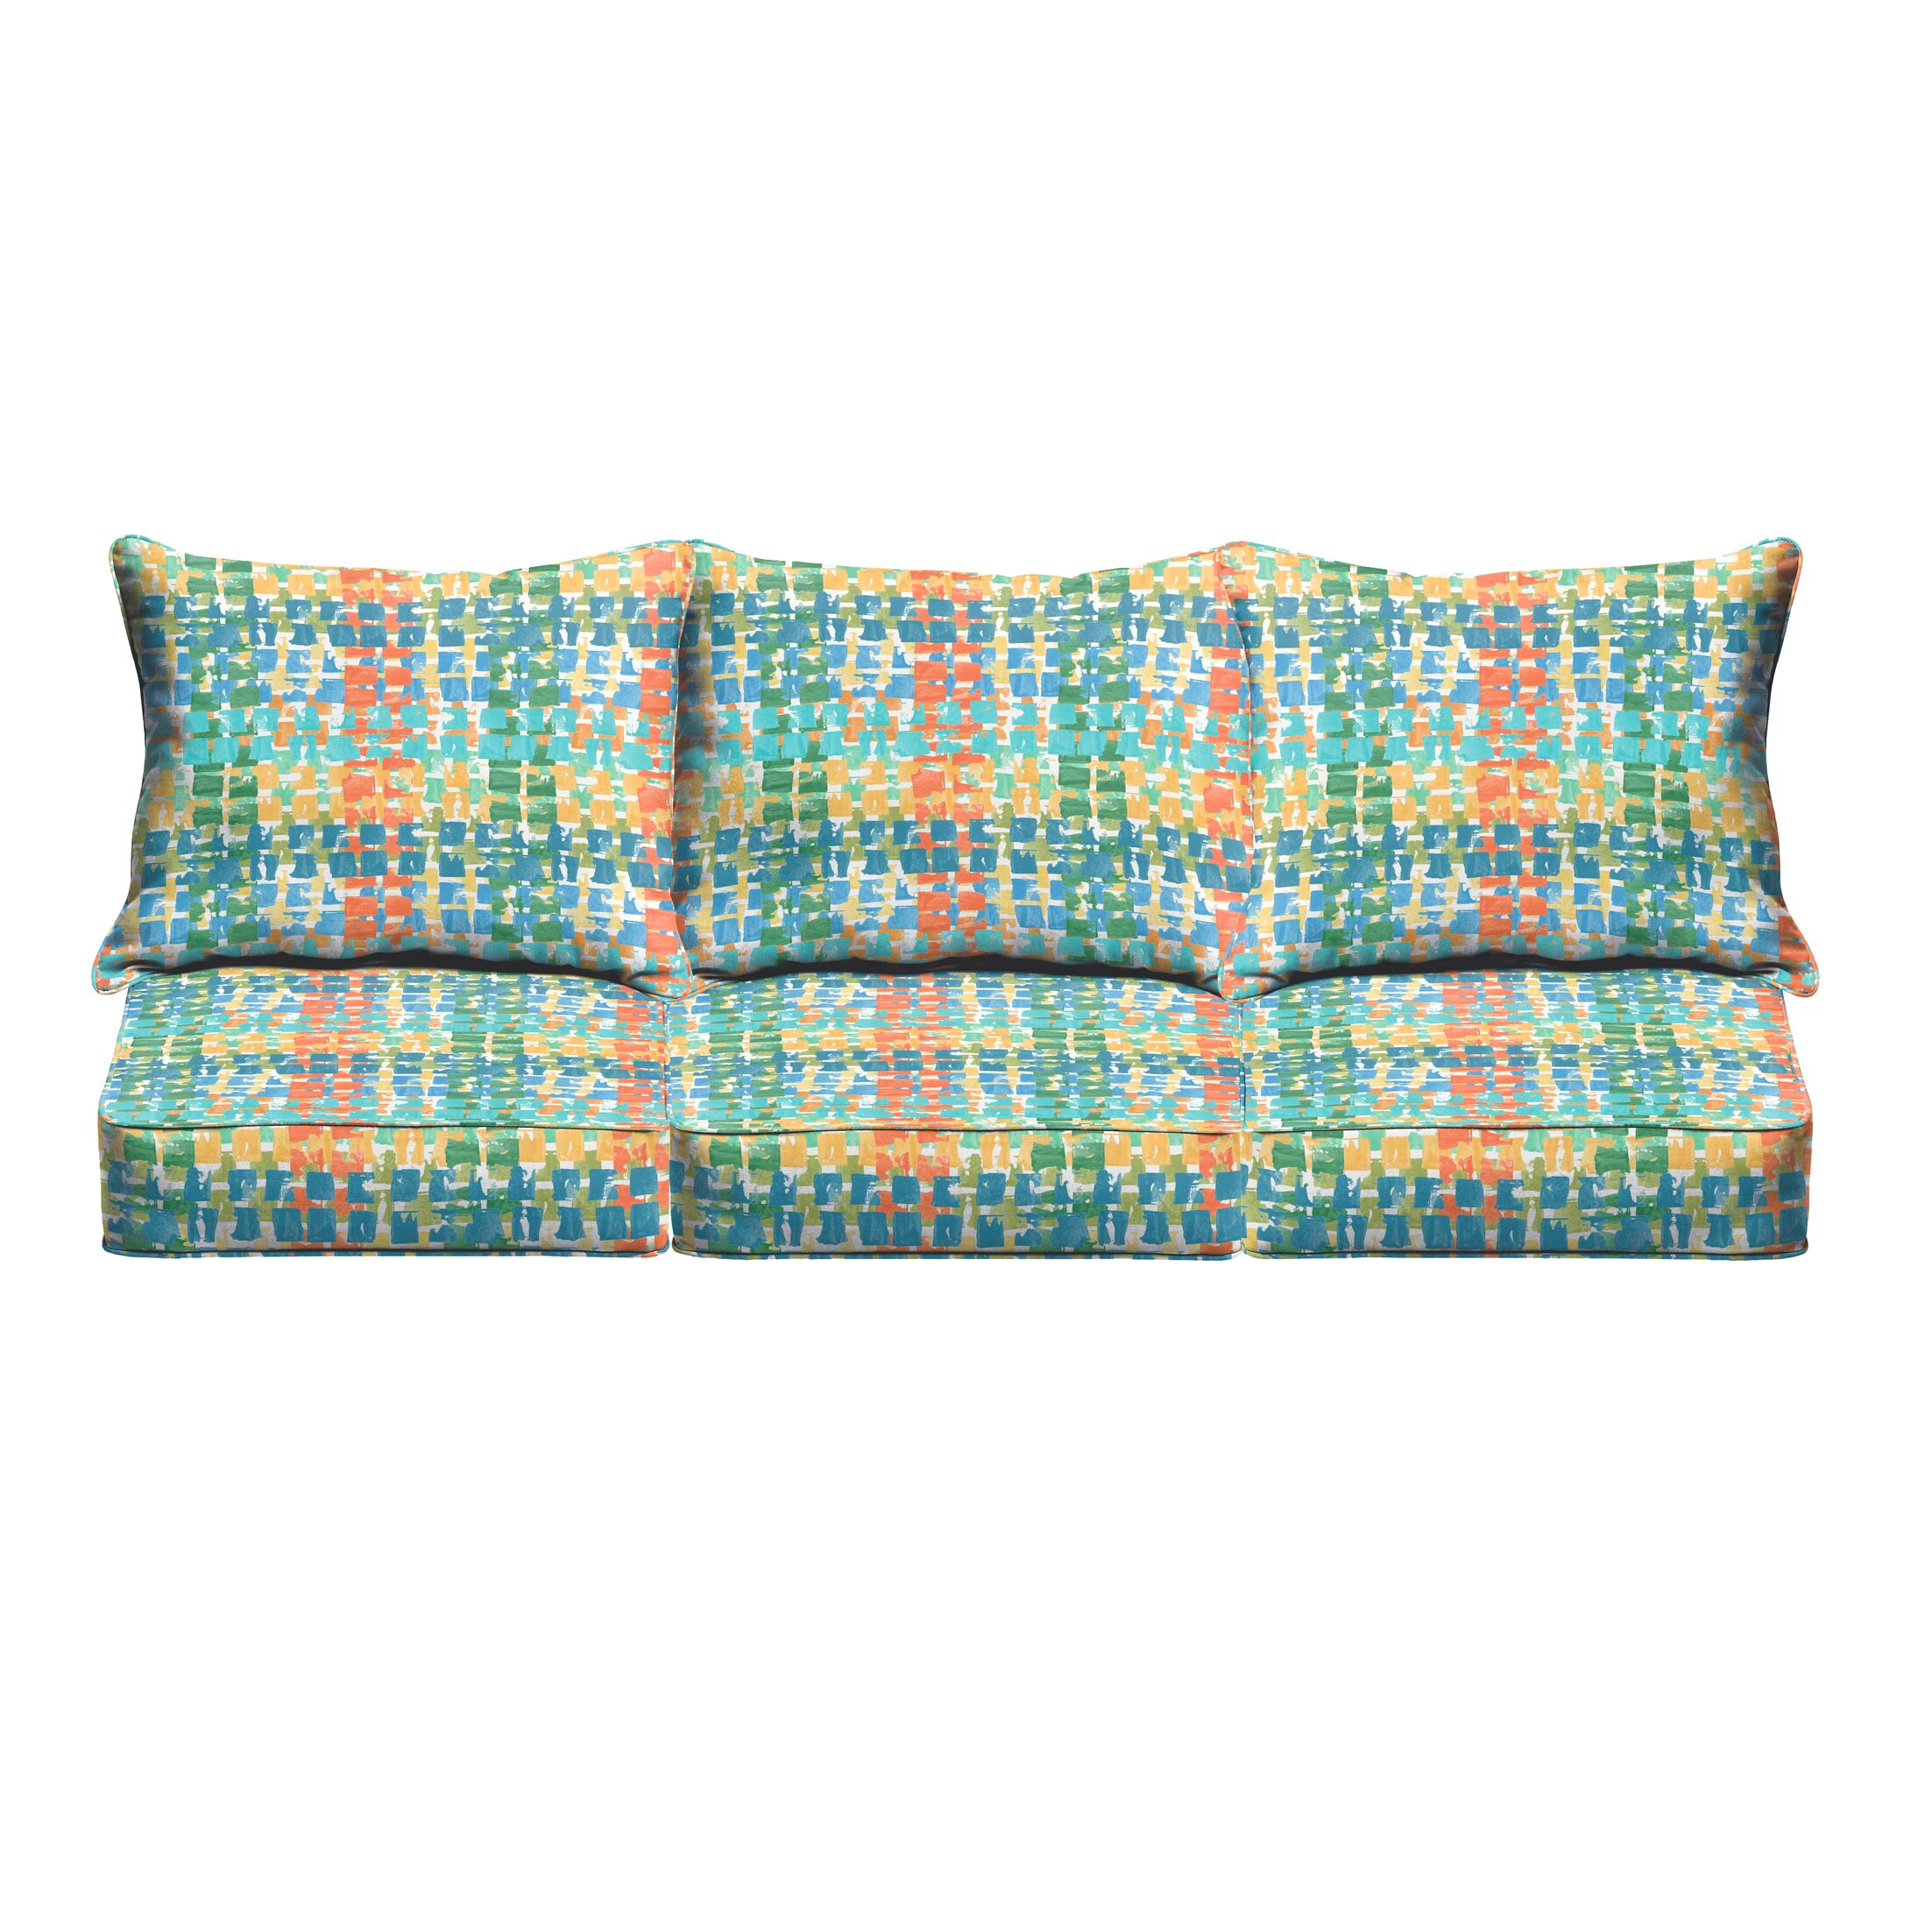 Momea 6 Piece Sofa Cushion Set Fabric: Green/ Red